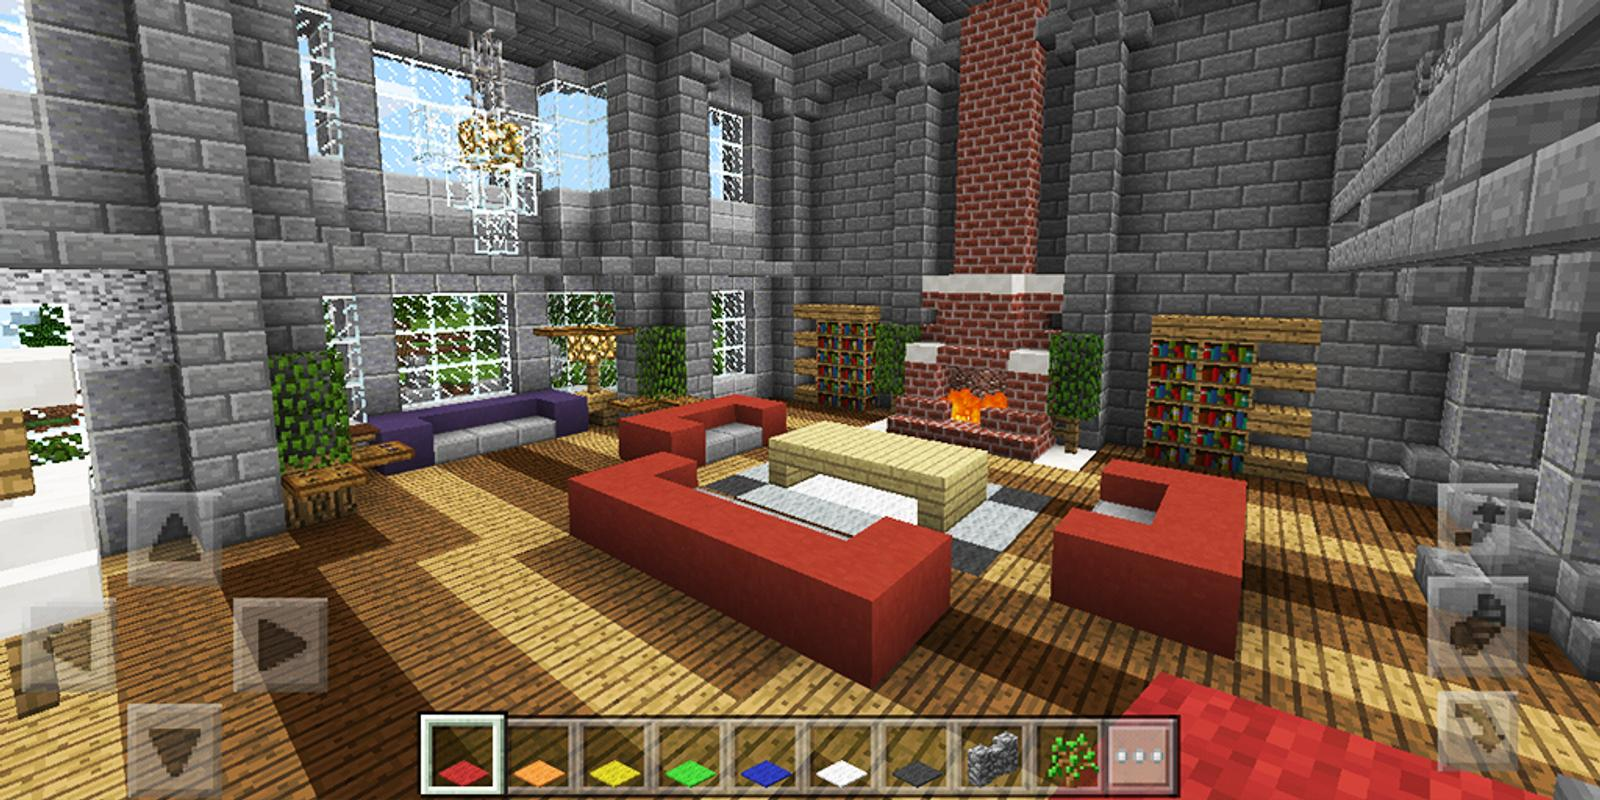 Maps Mansion For Minecraft PE For Android APK Download - Mapas para minecraft pe 0 15 1 en español